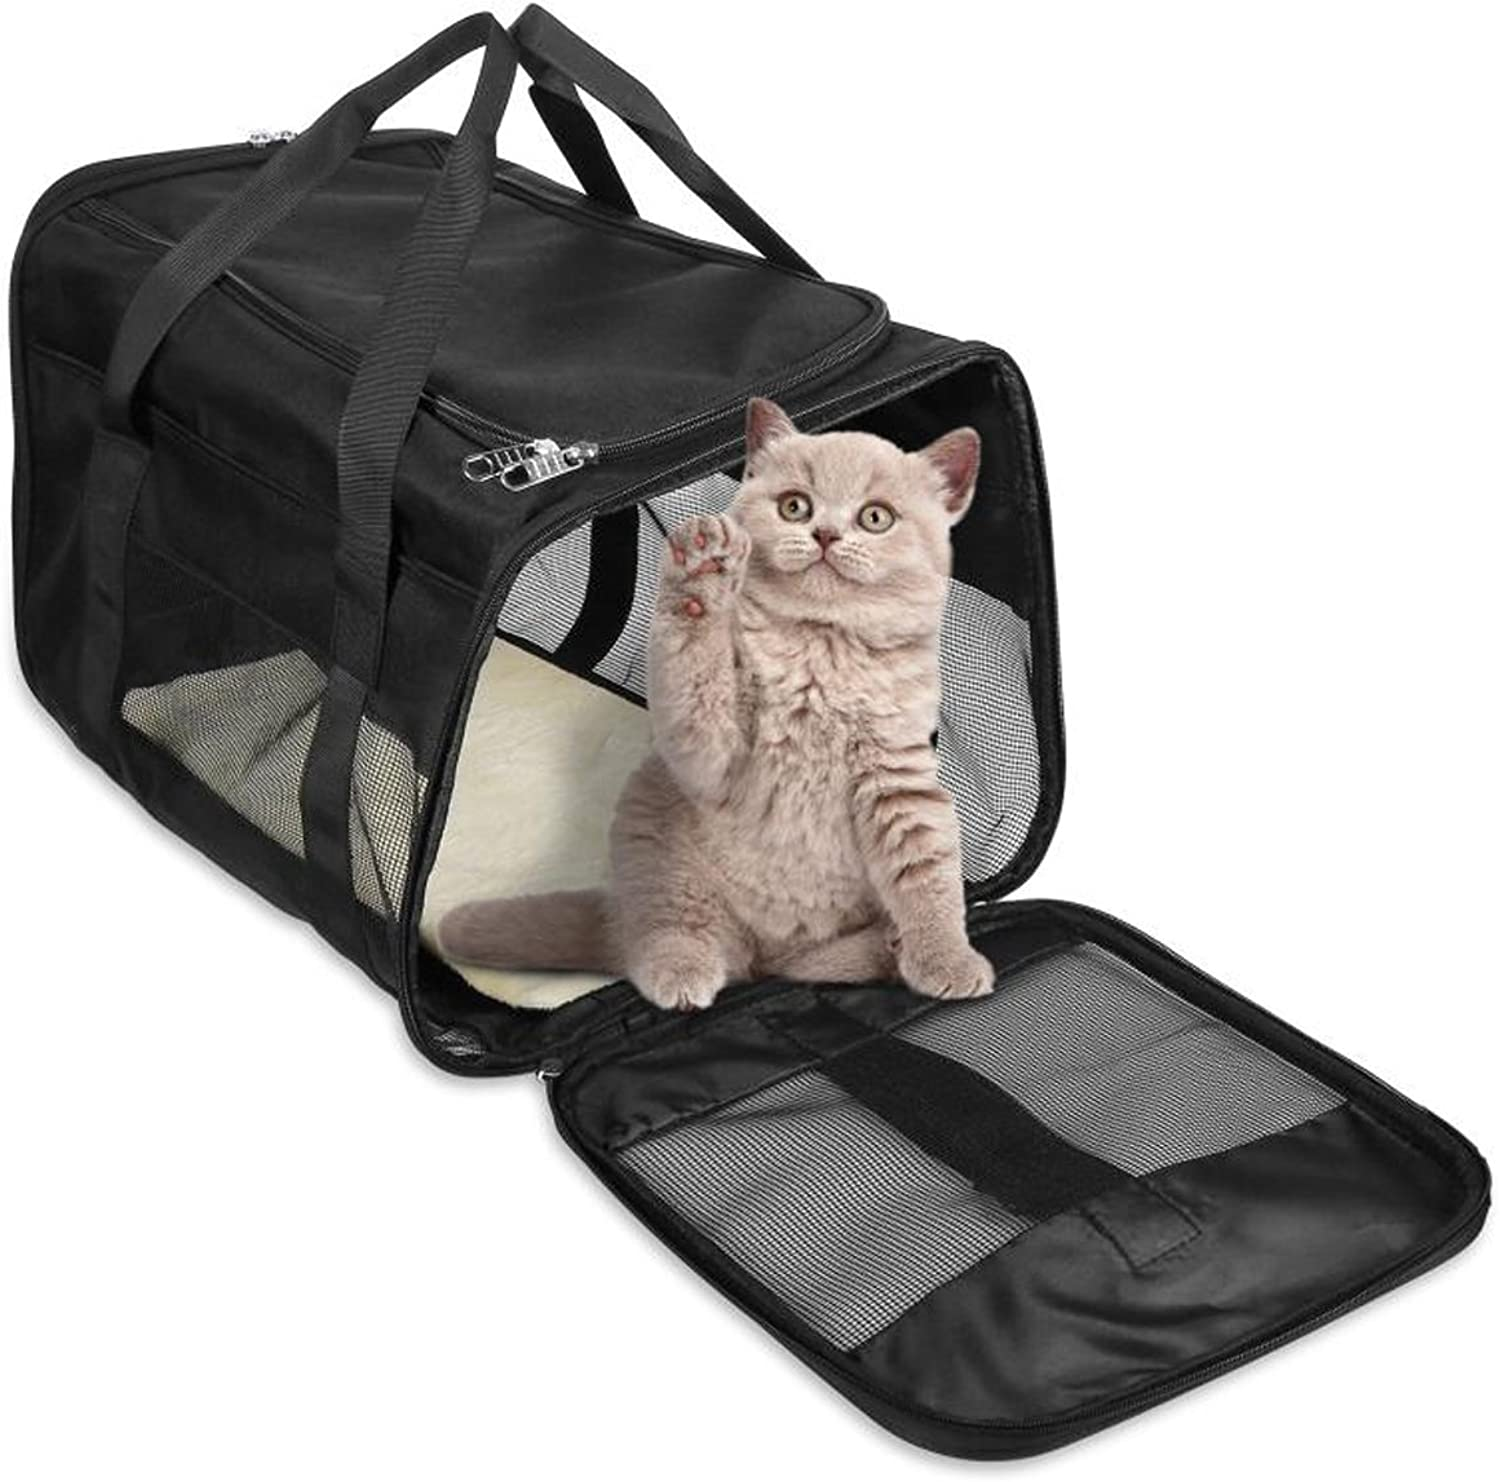 Dog Carriers for Small Dogs 18.9X11.8X11 Cat Carriers for Medium Cats Cat Carrier Pet Carrier Suitable for Small Dogs and Cats Large and Medium Cats and Dogs, Puppy, Kittens, Pet Travel Carrier Black